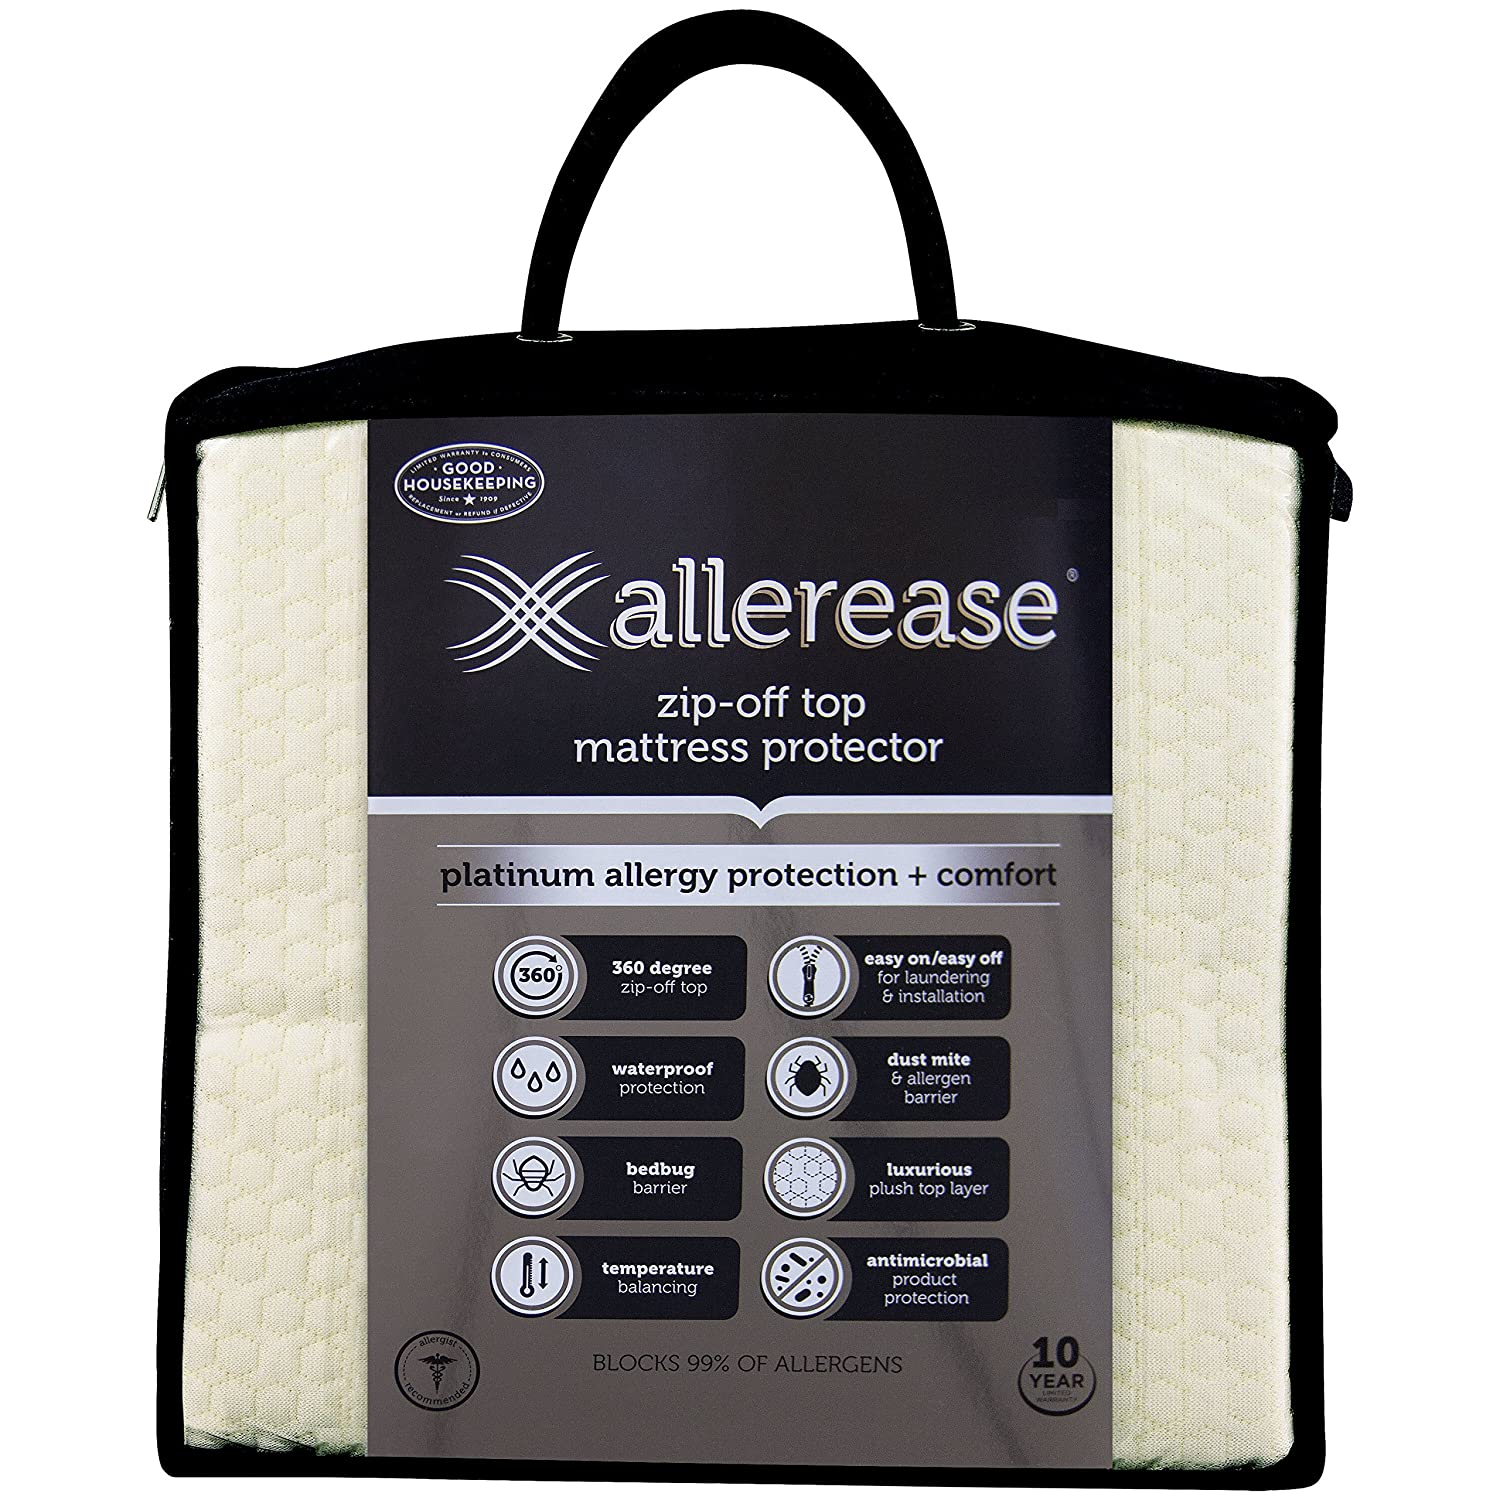 Aller-Ease Platinum Mattress Protector-360 Degree Zip-Off Top, Temperature Balancing Technology Plush Protection Against Bedbugs, Dust Mites & Ped Dander, Twin Sized, White American Textile Company 8810ATCC03